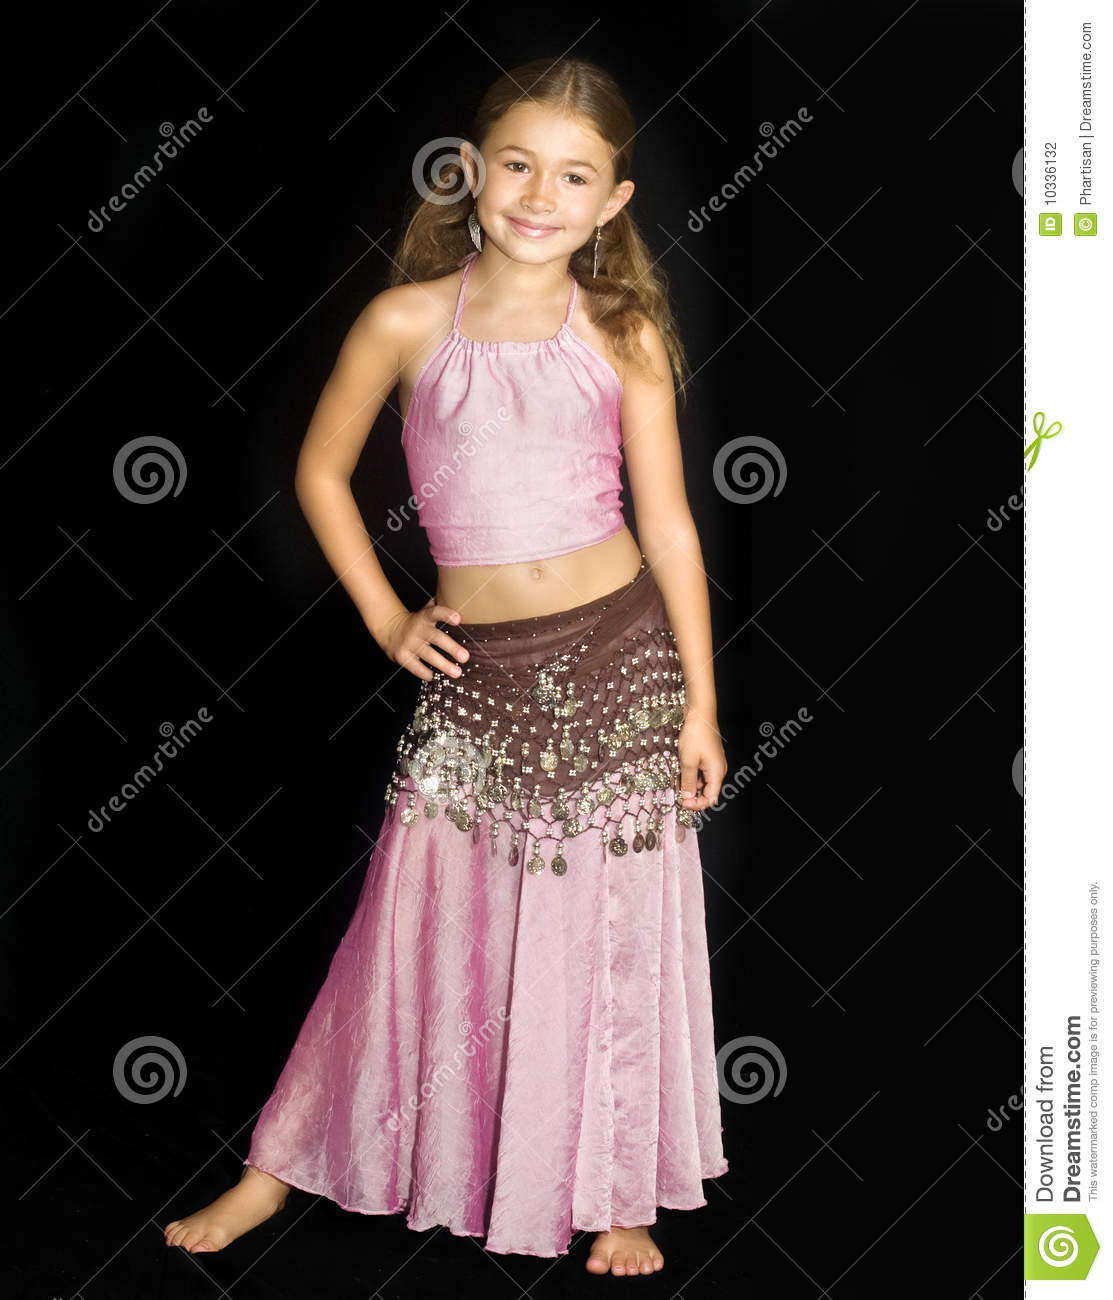 Belly Dancers Clothes For Sale Anlis